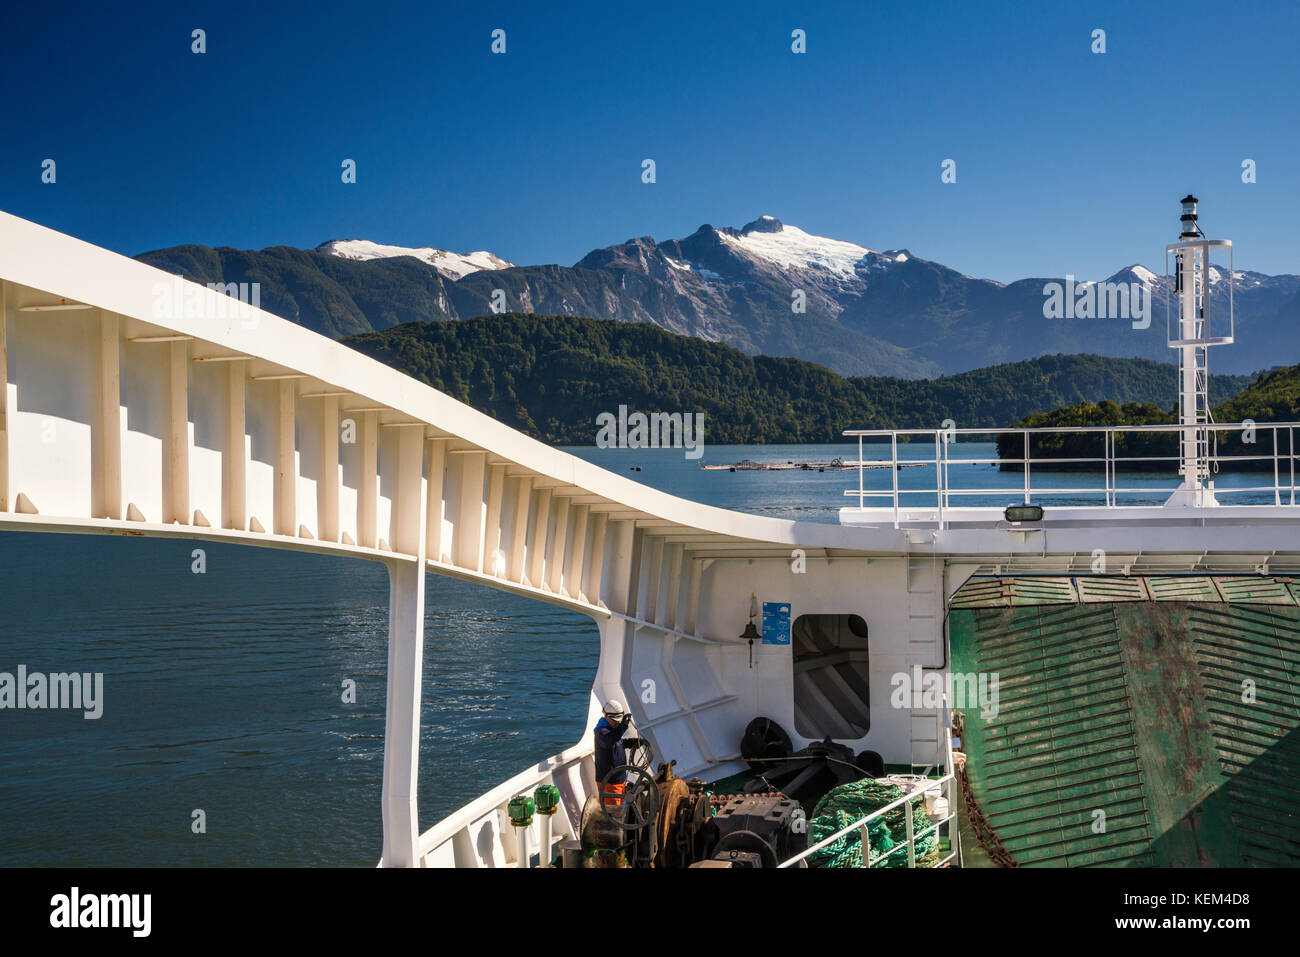 Quelat ferry, in Aisen Fjord near Puerto Chacabuco, Aysen Region, Patagonia, Chile - Stock Image